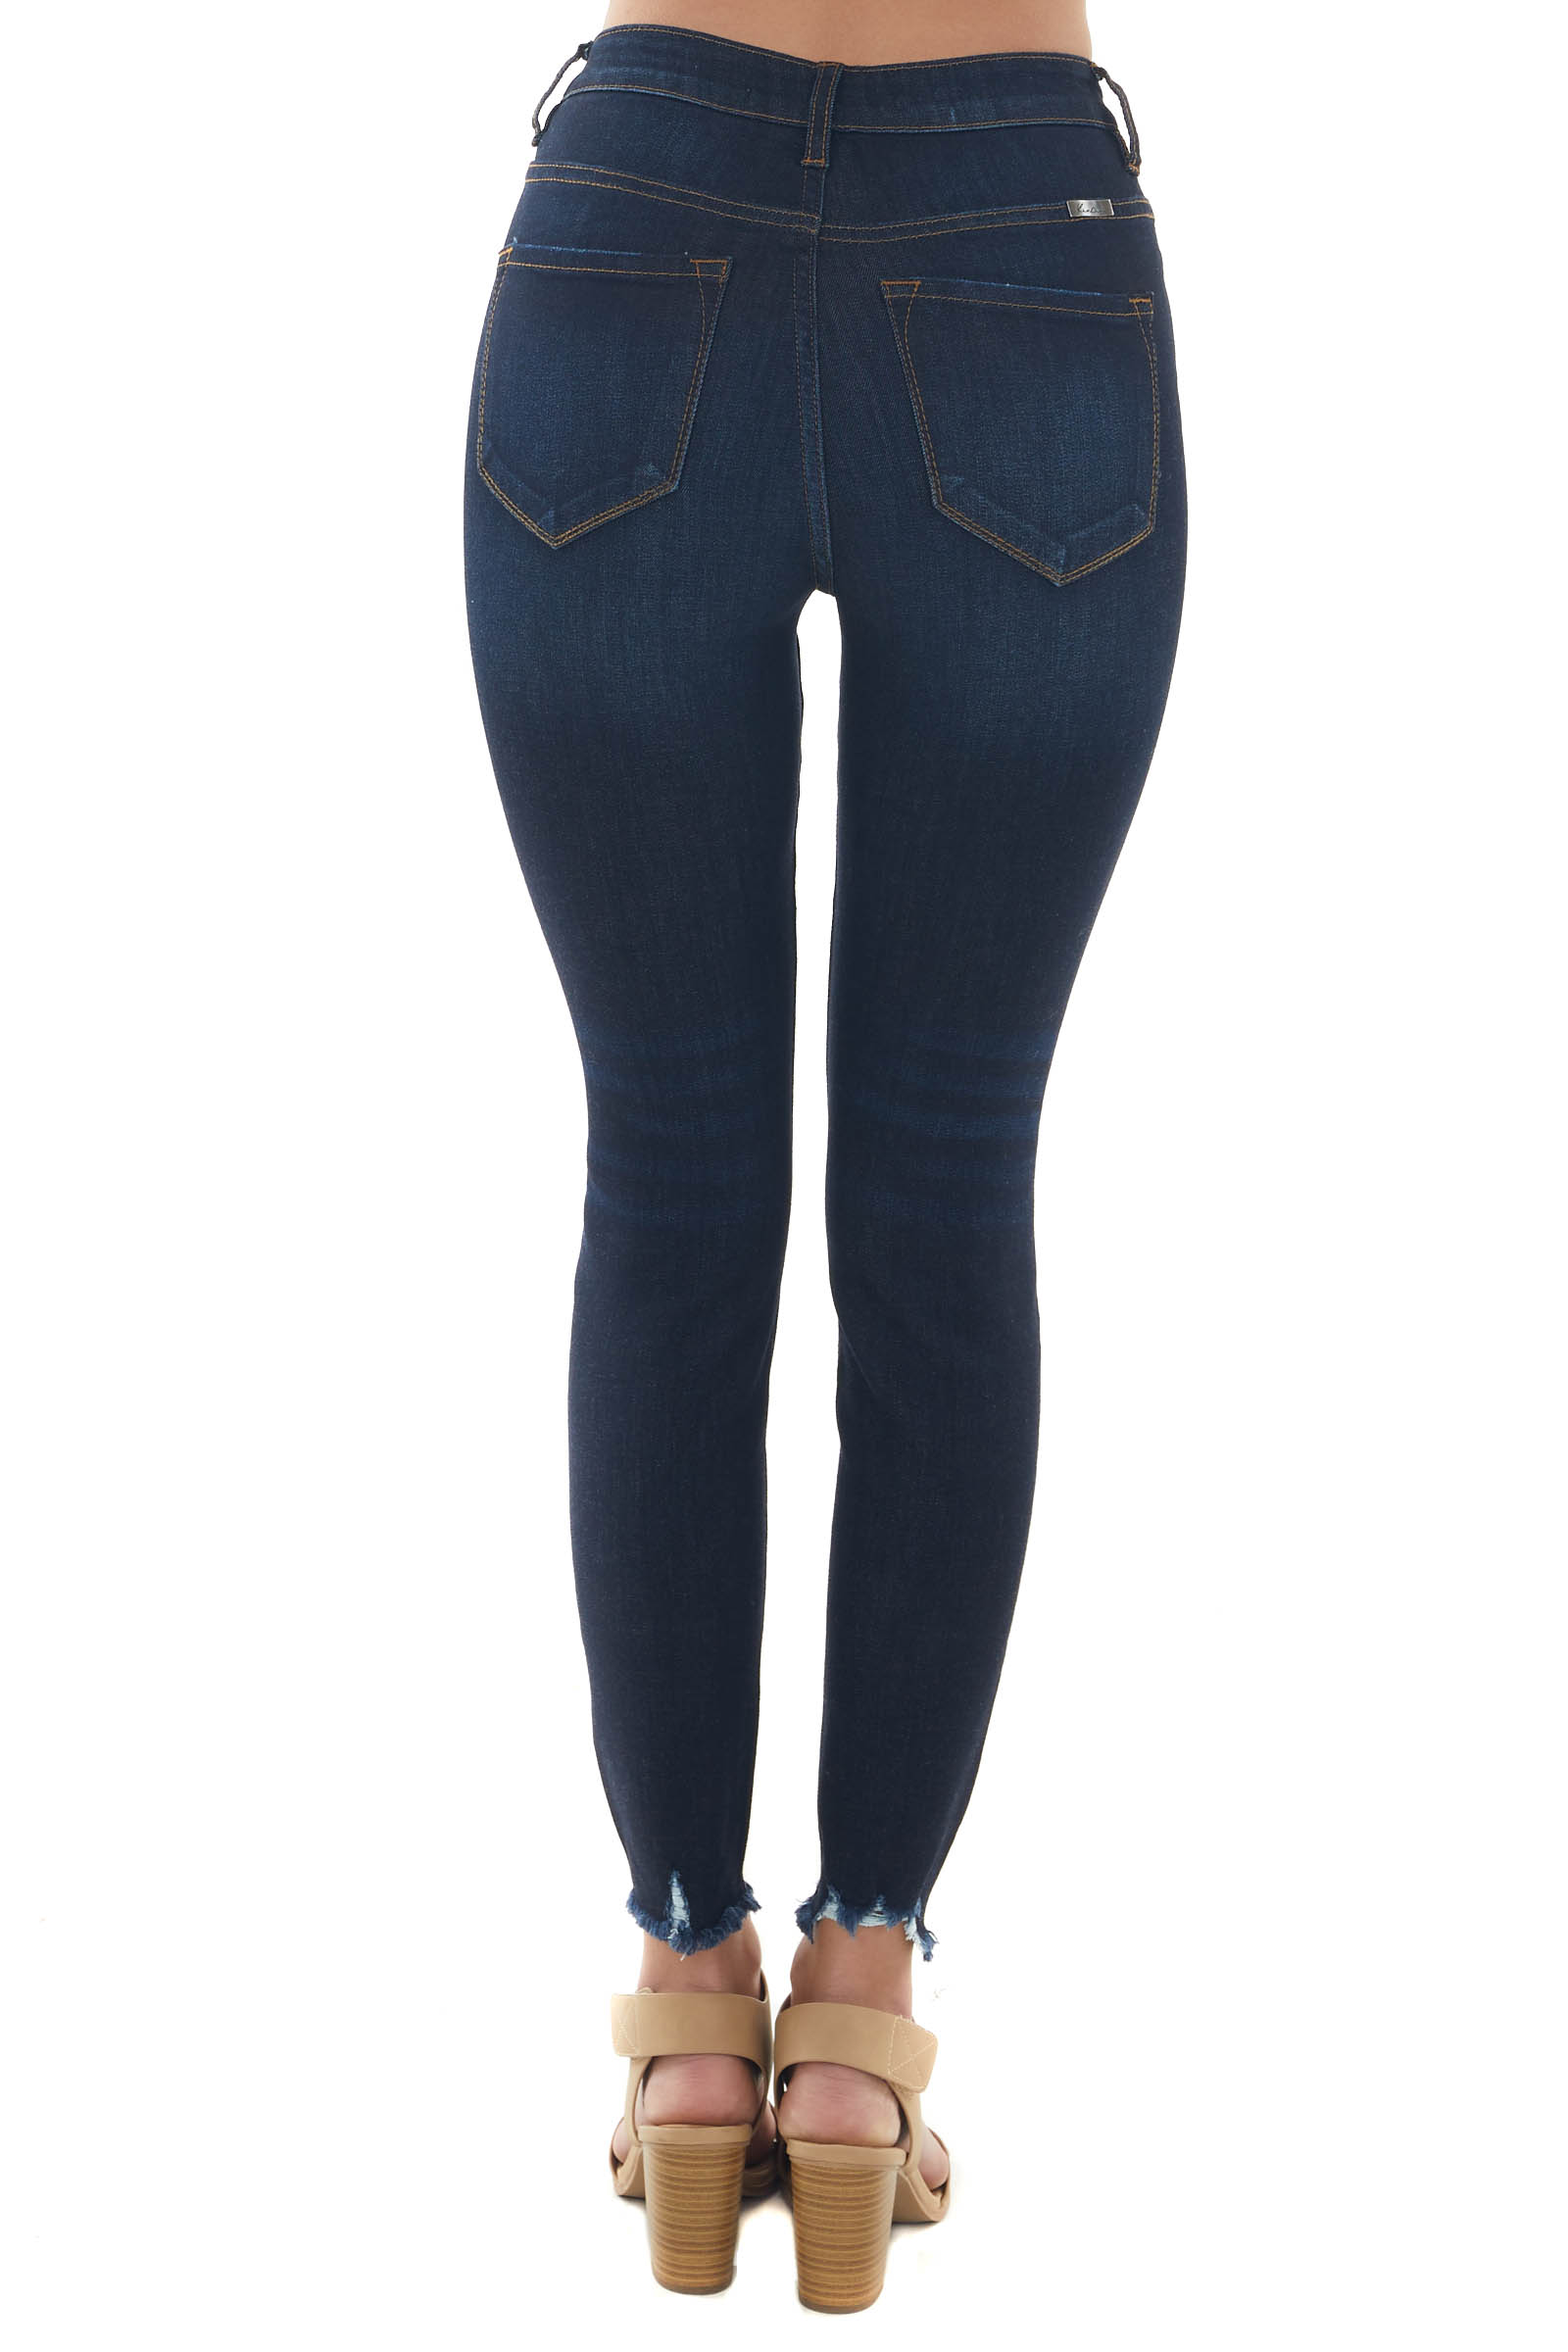 Dark High Rise Multi Button Fly Skinny Jeans